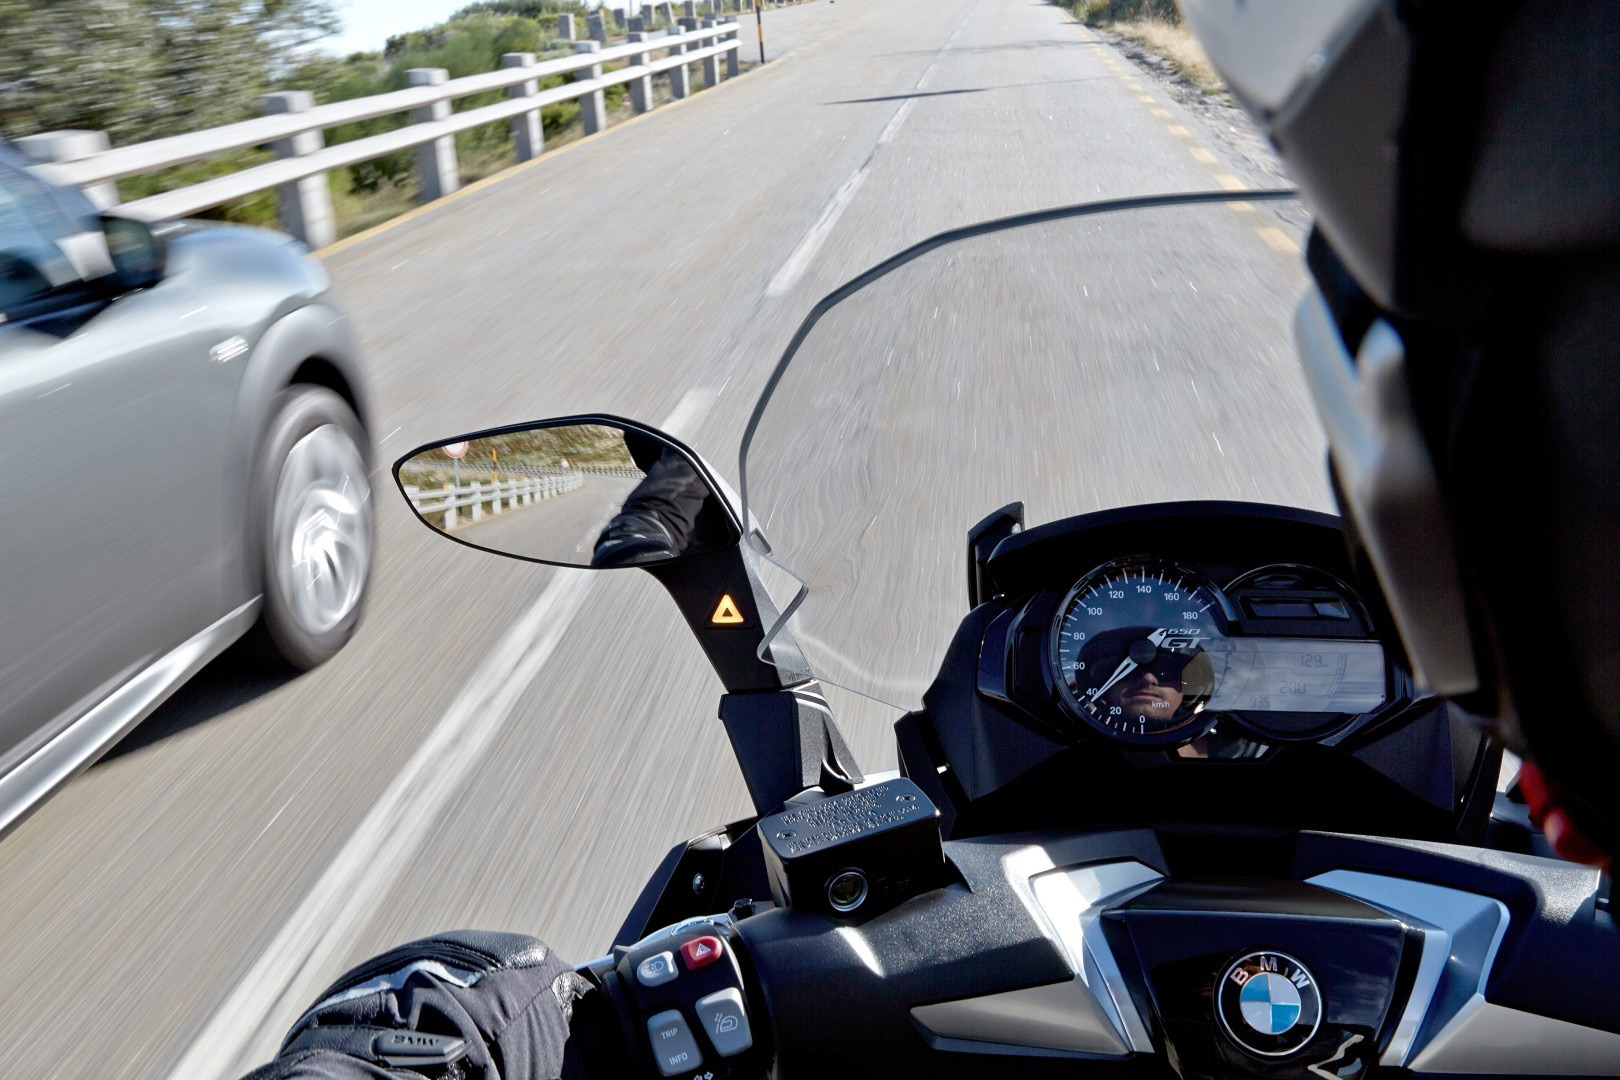 bmw motorbike on the road